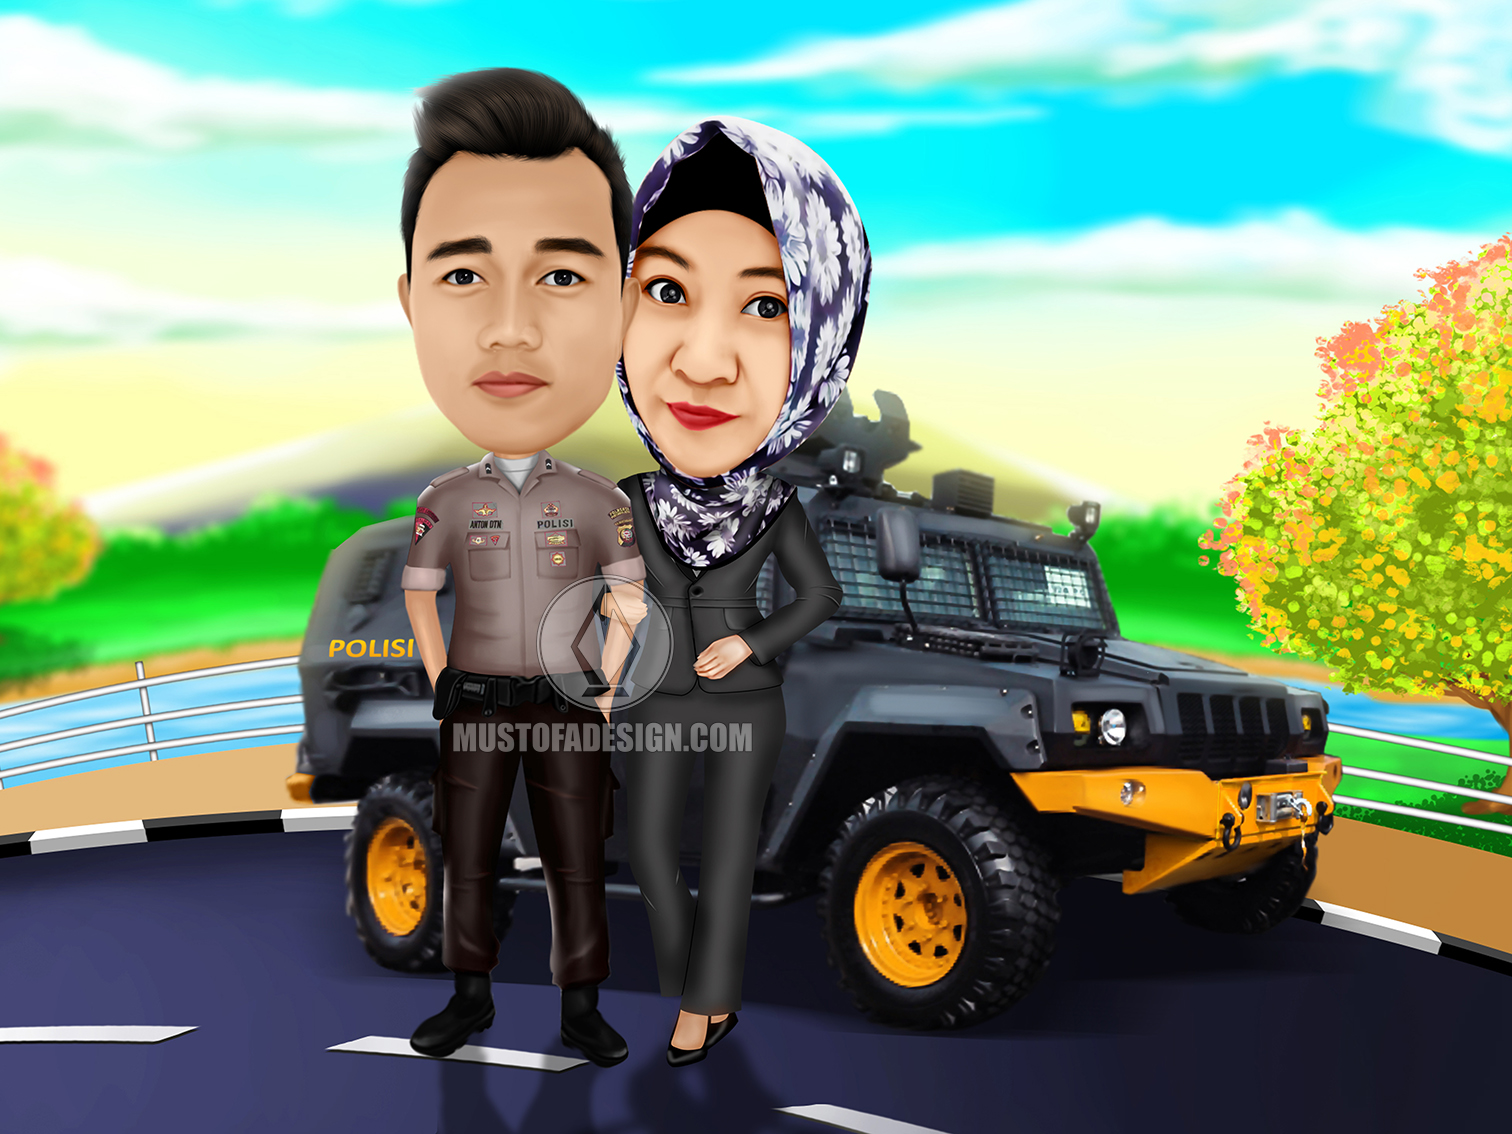 KARIKATUR COUPLE POLISI MUSTOFA DESIGN